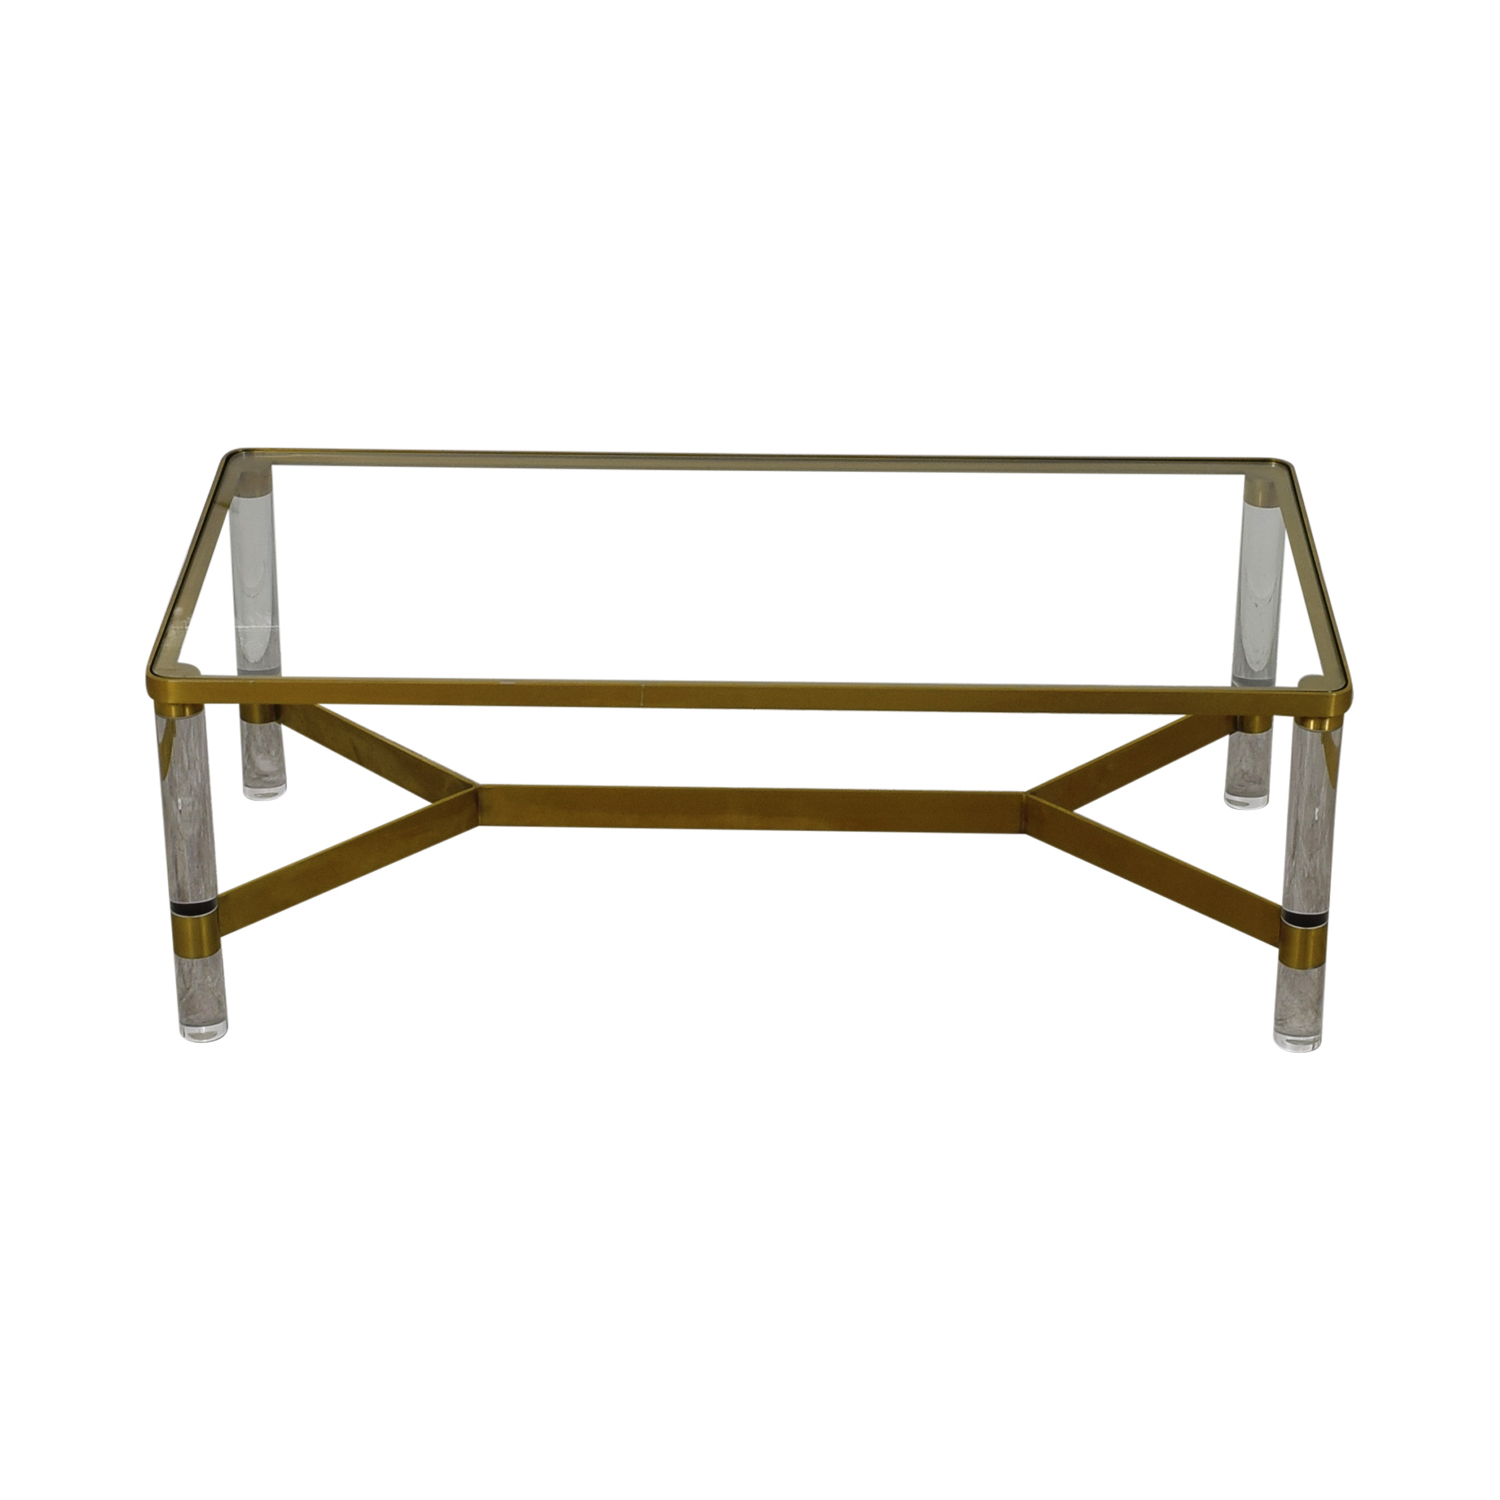 [%72% Off – Anthropologie Anthropologie Oscarine Glass Acrylic & Brass With Regard To Most Recent Acrylic Glass And Brass Coffee Tables|Acrylic Glass And Brass Coffee Tables With Regard To Popular 72% Off – Anthropologie Anthropologie Oscarine Glass Acrylic & Brass|Favorite Acrylic Glass And Brass Coffee Tables Throughout 72% Off – Anthropologie Anthropologie Oscarine Glass Acrylic & Brass|Most Current 72% Off – Anthropologie Anthropologie Oscarine Glass Acrylic & Brass With Regard To Acrylic Glass And Brass Coffee Tables%] (View 10 of 20)